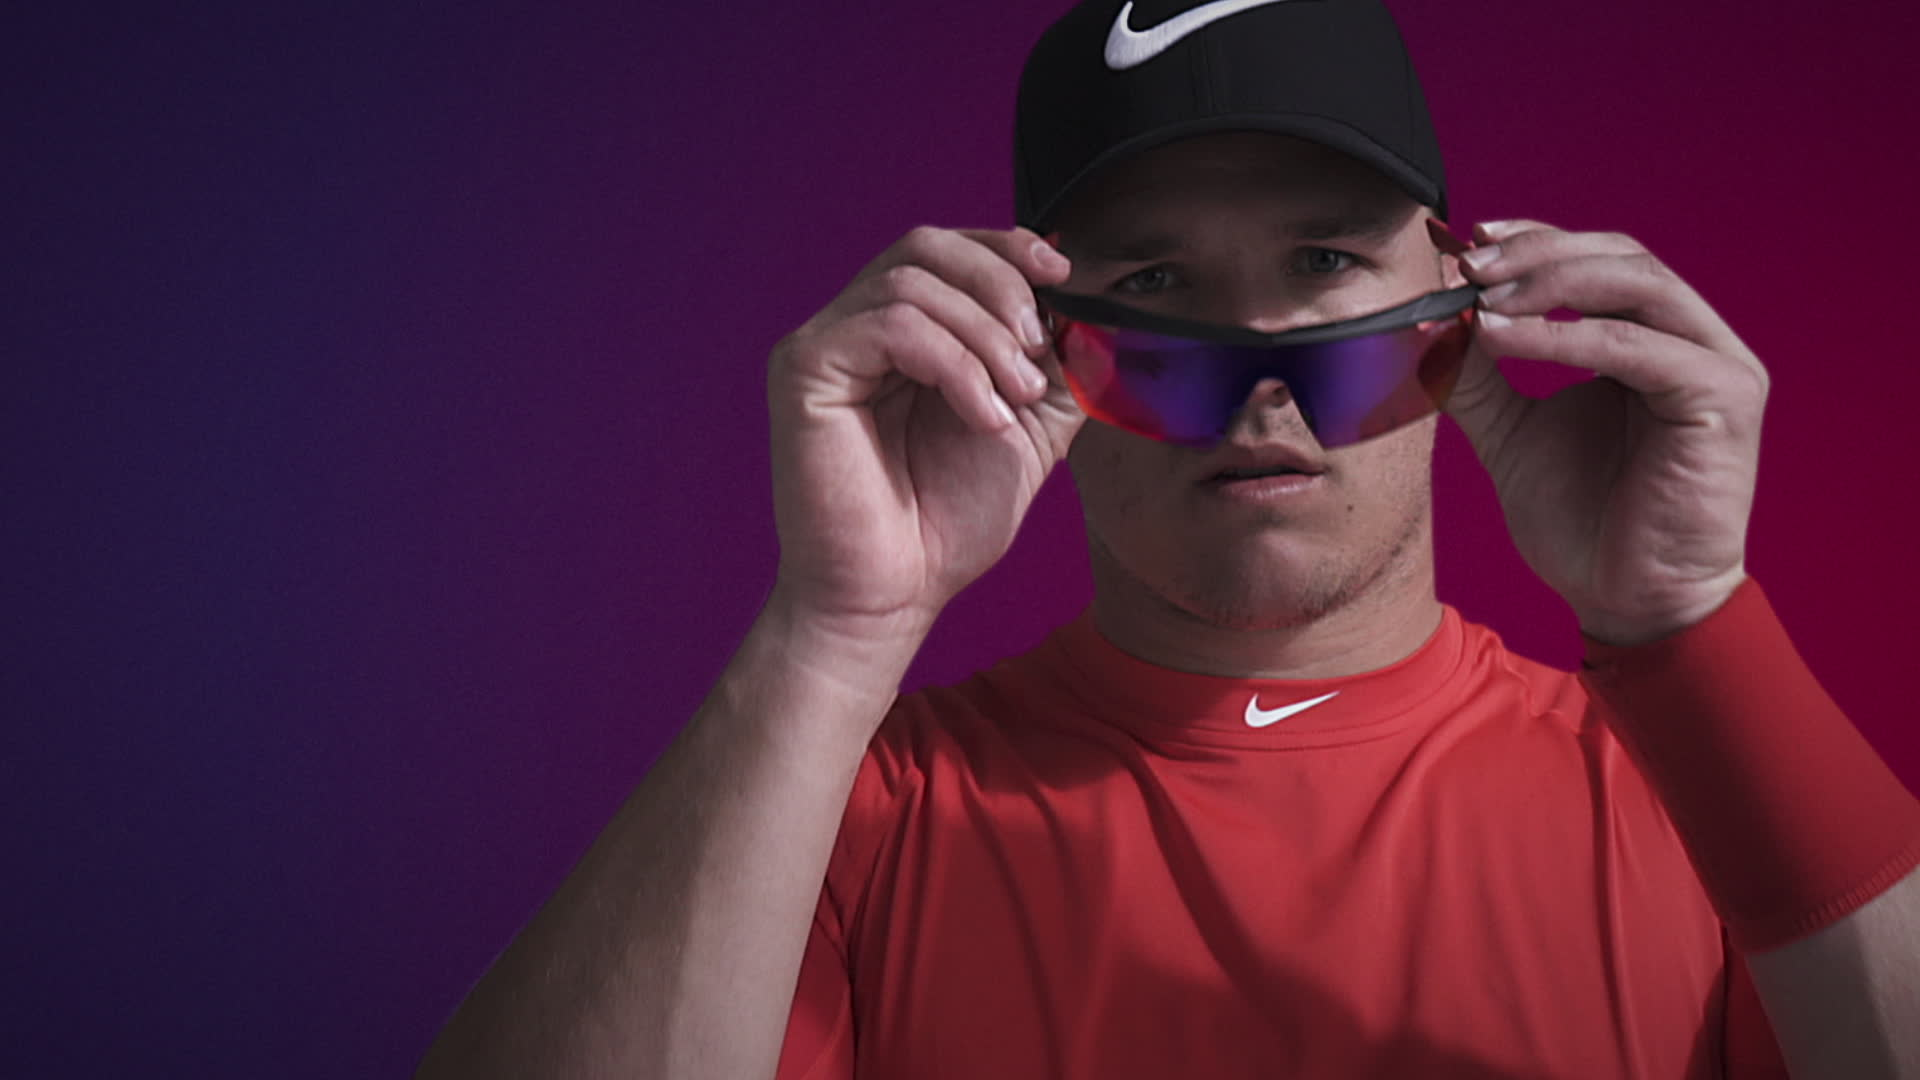 NIKE VISION INTRODUCES CUTTING-EDGE HYPERFORCE SUNGLASSES DESIGNED FOR BASEBALL & TRAINING. Developed with insights from All-Stars Mike Trout and George Springer, as well as other top Nike athletes, the Hyperforce and Hyperforce Elite feature unparalleled stability and cutting-edge lens technology for peak performance on-and-off the field.